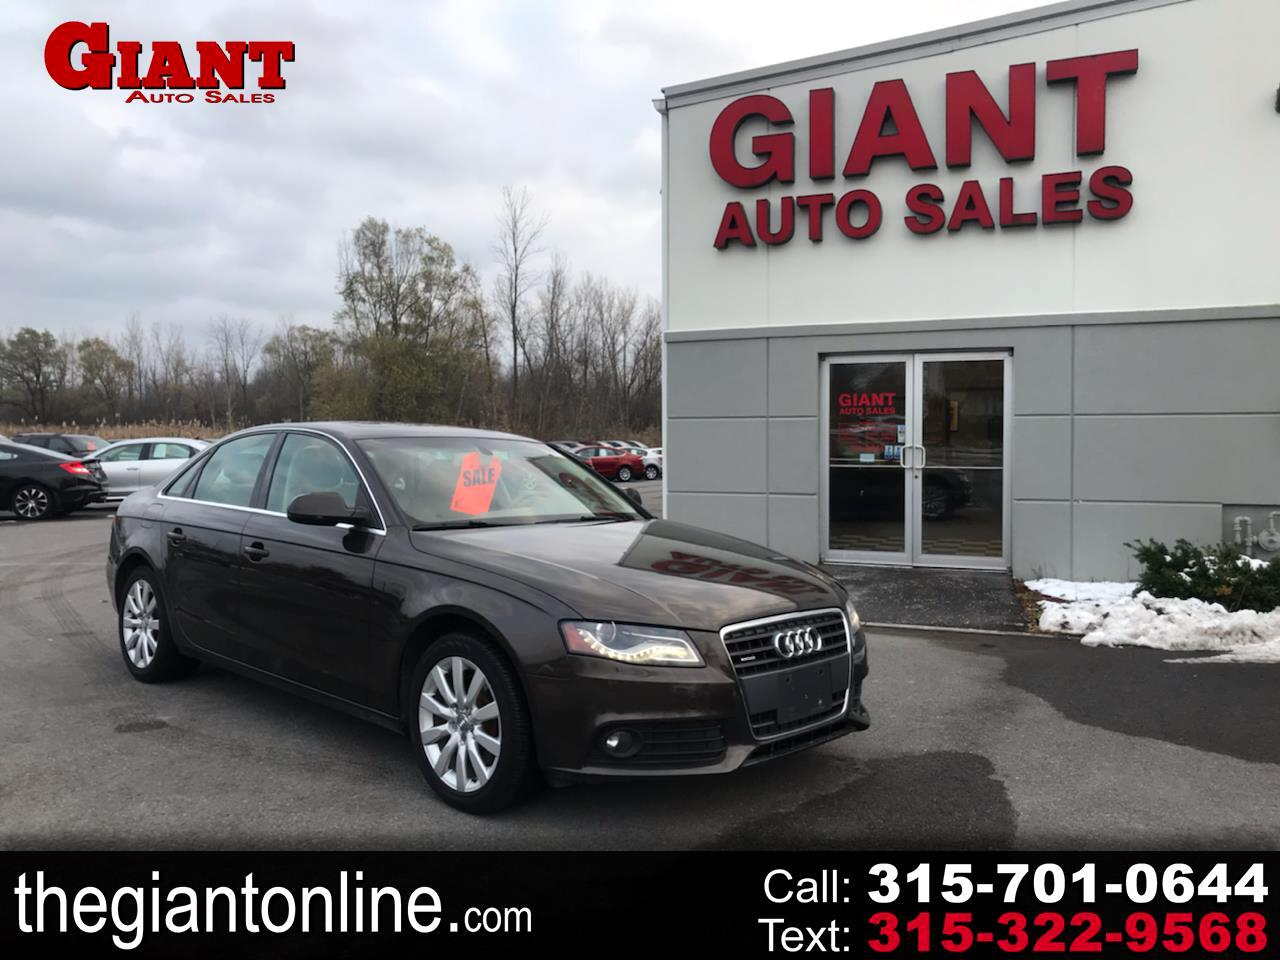 Giant Auto Sales >> Used Cars For Sale East Syracuse Ny 13057 Giant Auto Sales